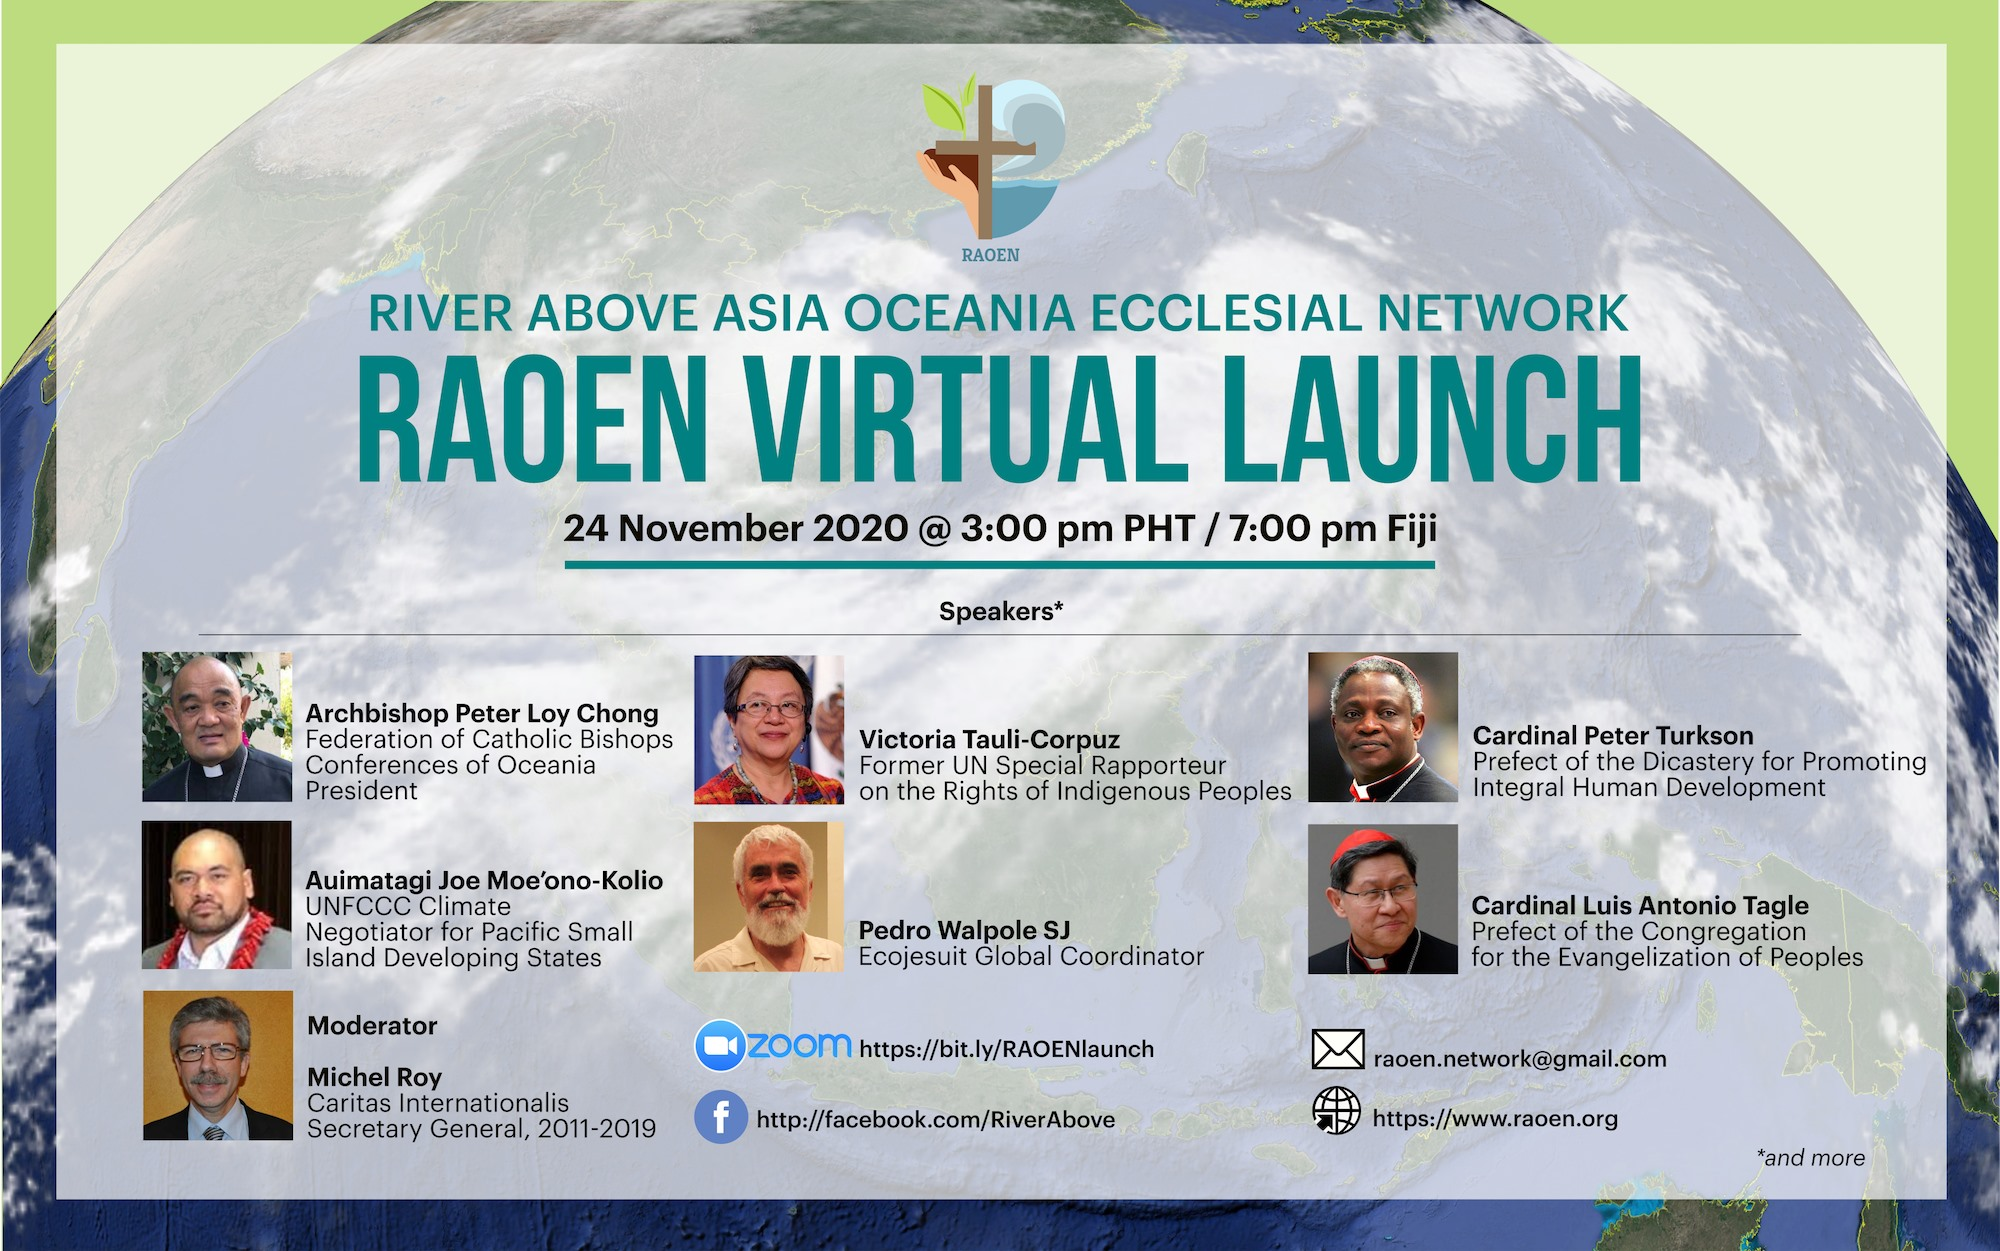 RAOEN, an ecclesial network for forests, ocean, and peoples of Oceania and Asia